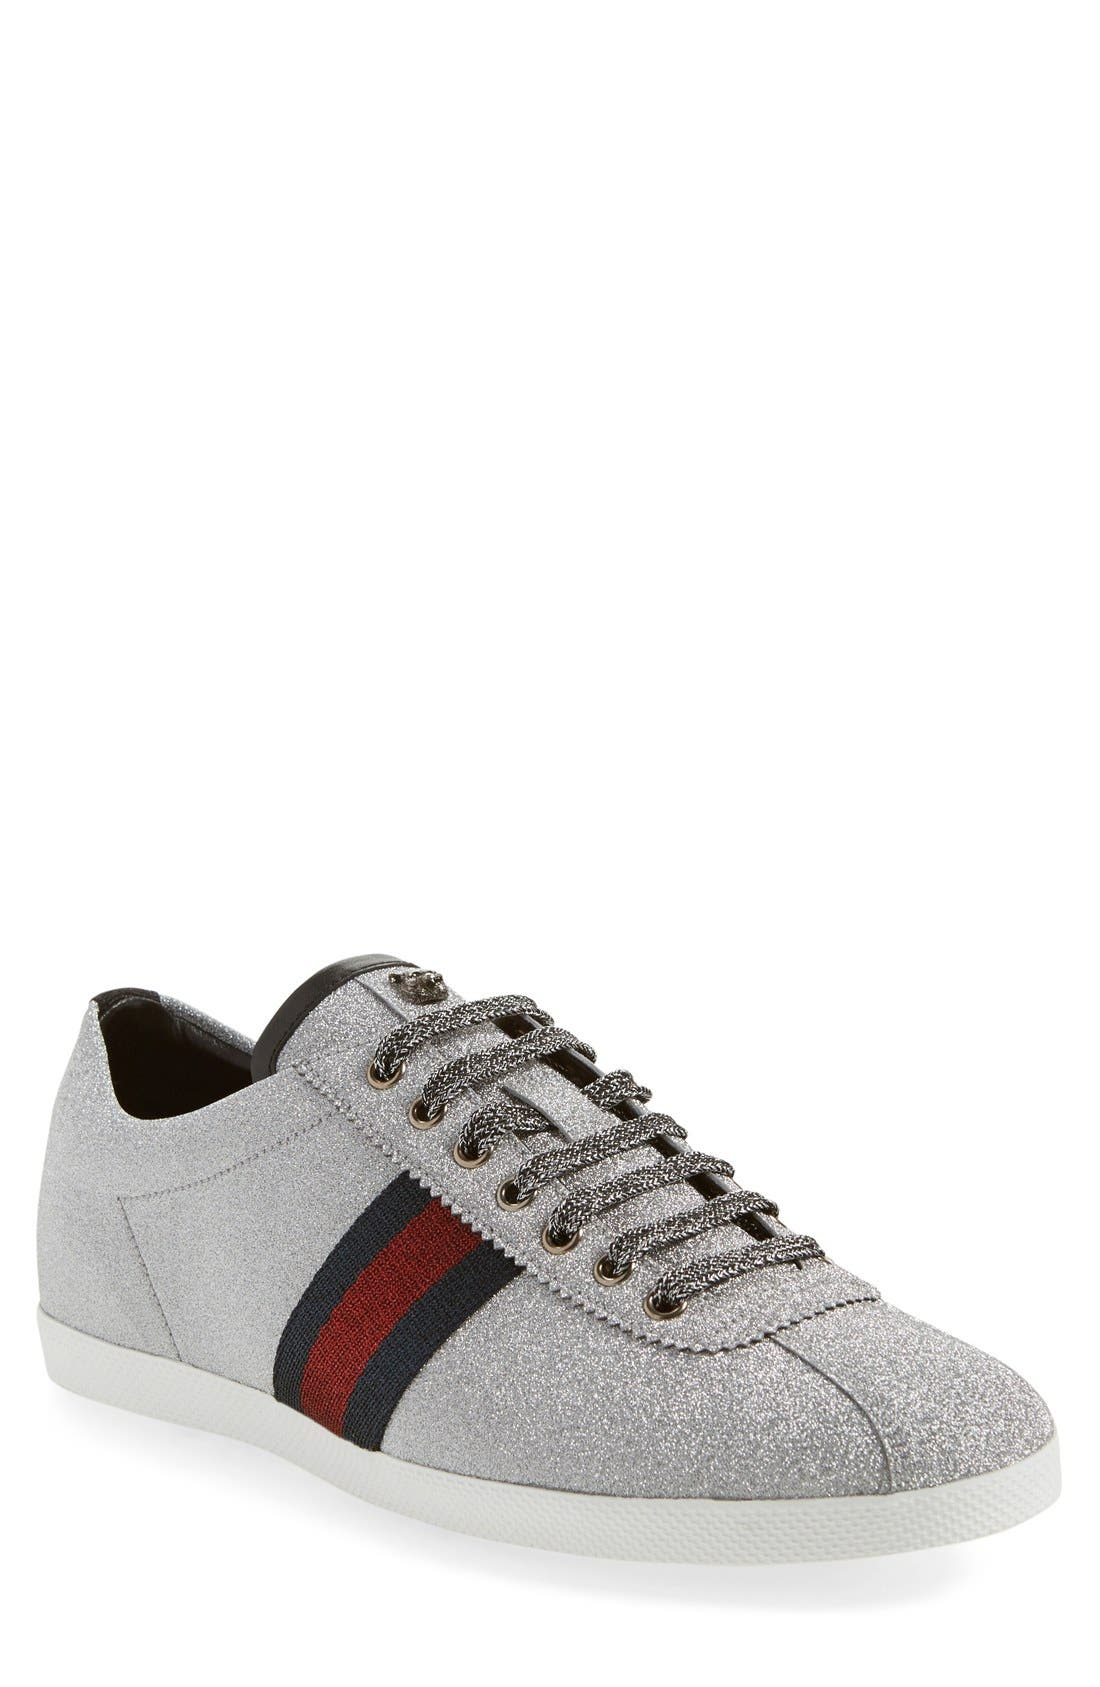 Bambi Lace-Up Sneaker,                             Main thumbnail 1, color,                             ARGENTO FABRIC